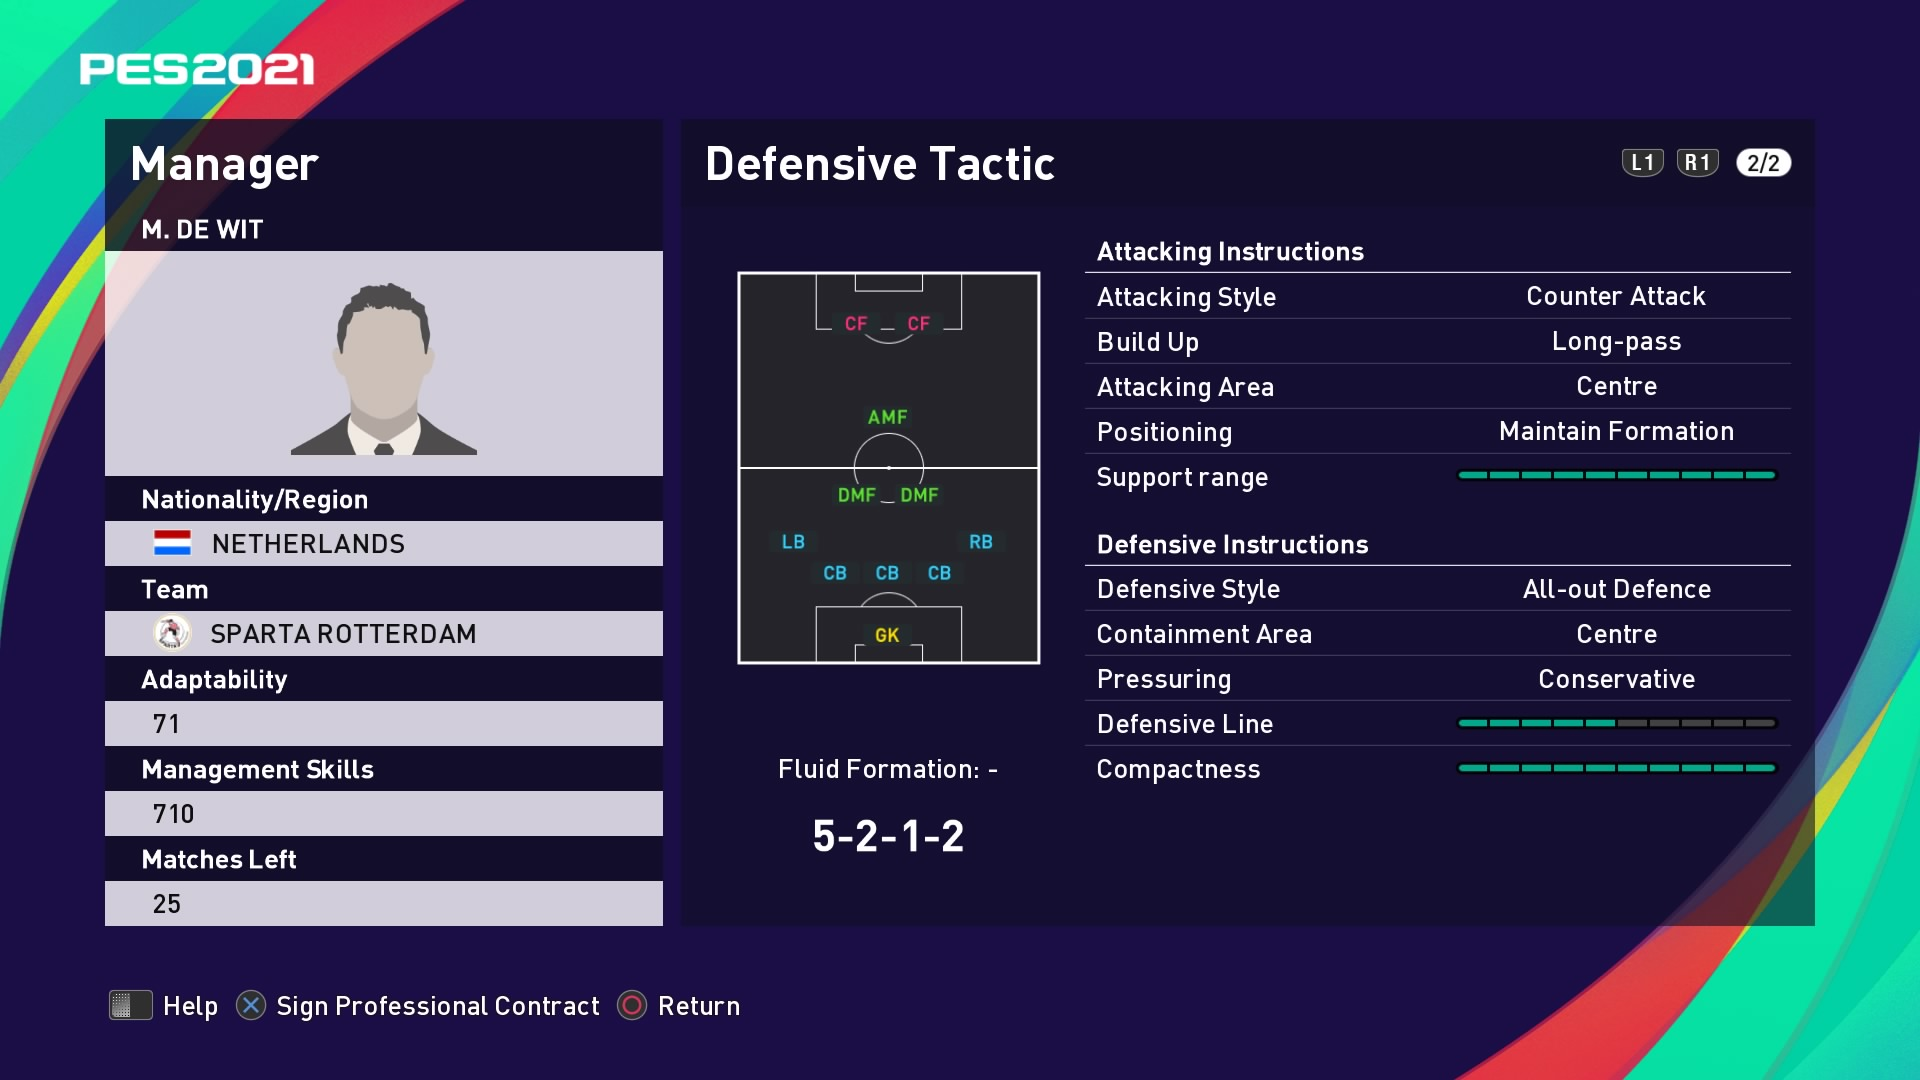 M. De Wit (Henk Fraser) Defensive Tactic in PES 2021 myClub